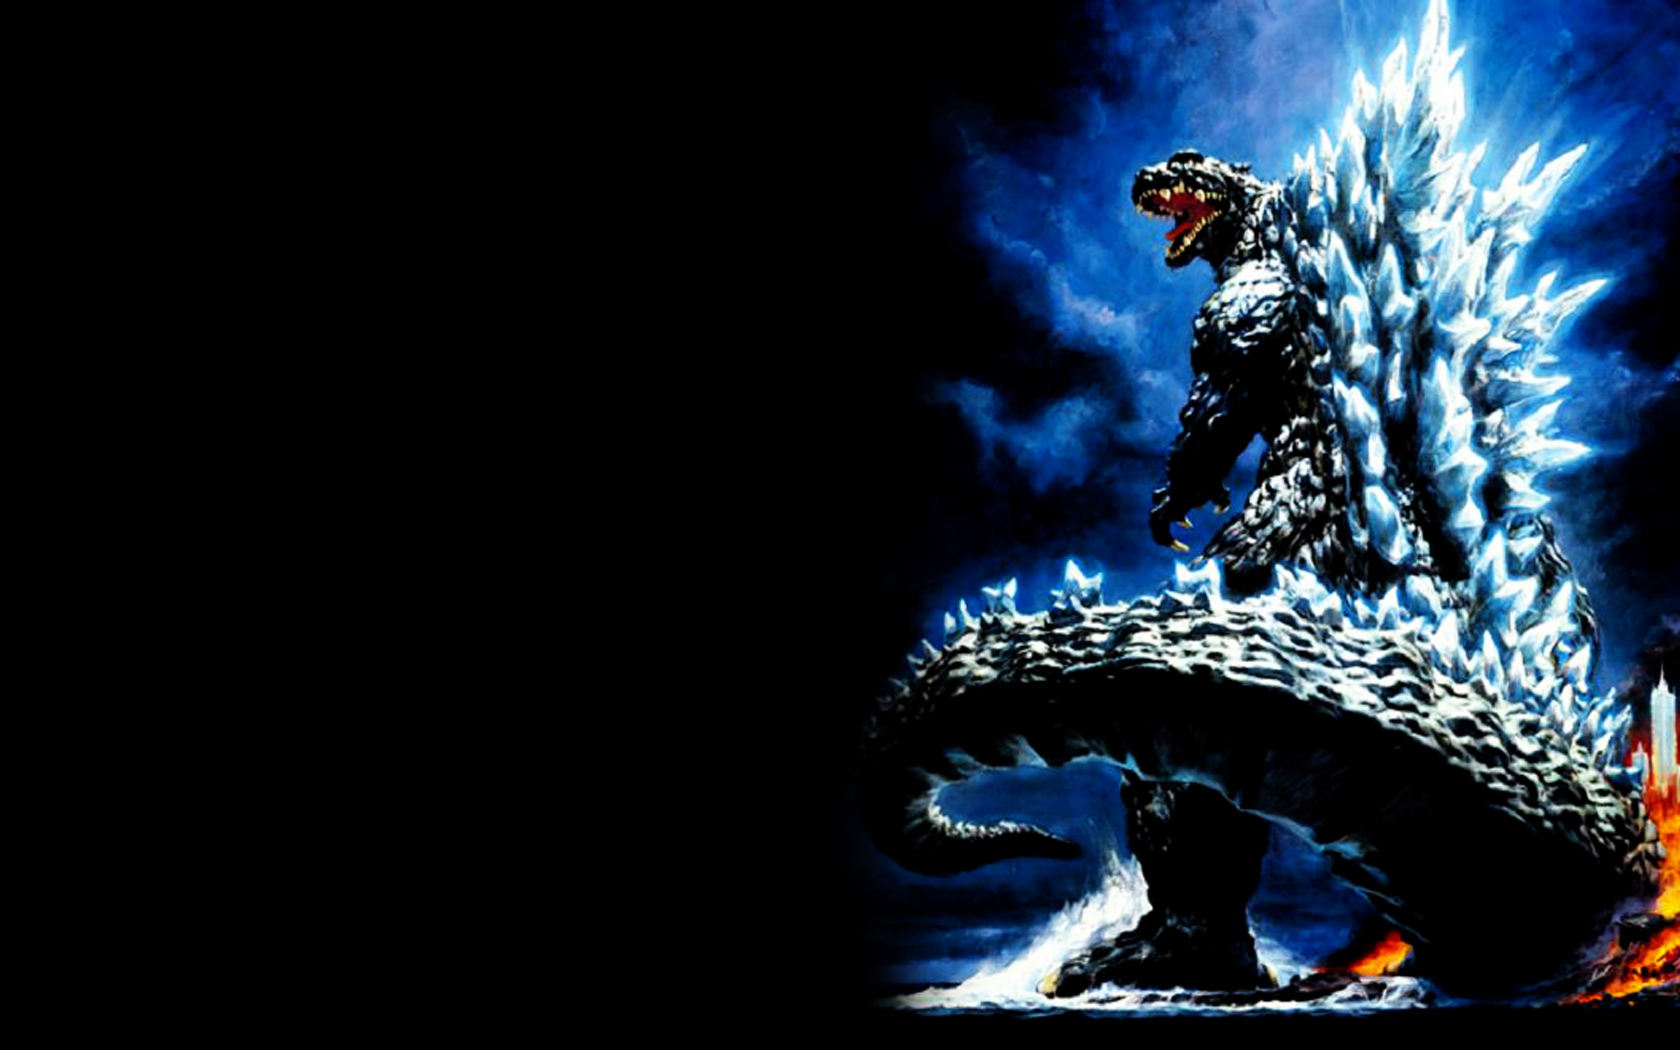 Godzilla Wallpaper 6 by Spitfire666xXxXx 1680x1050